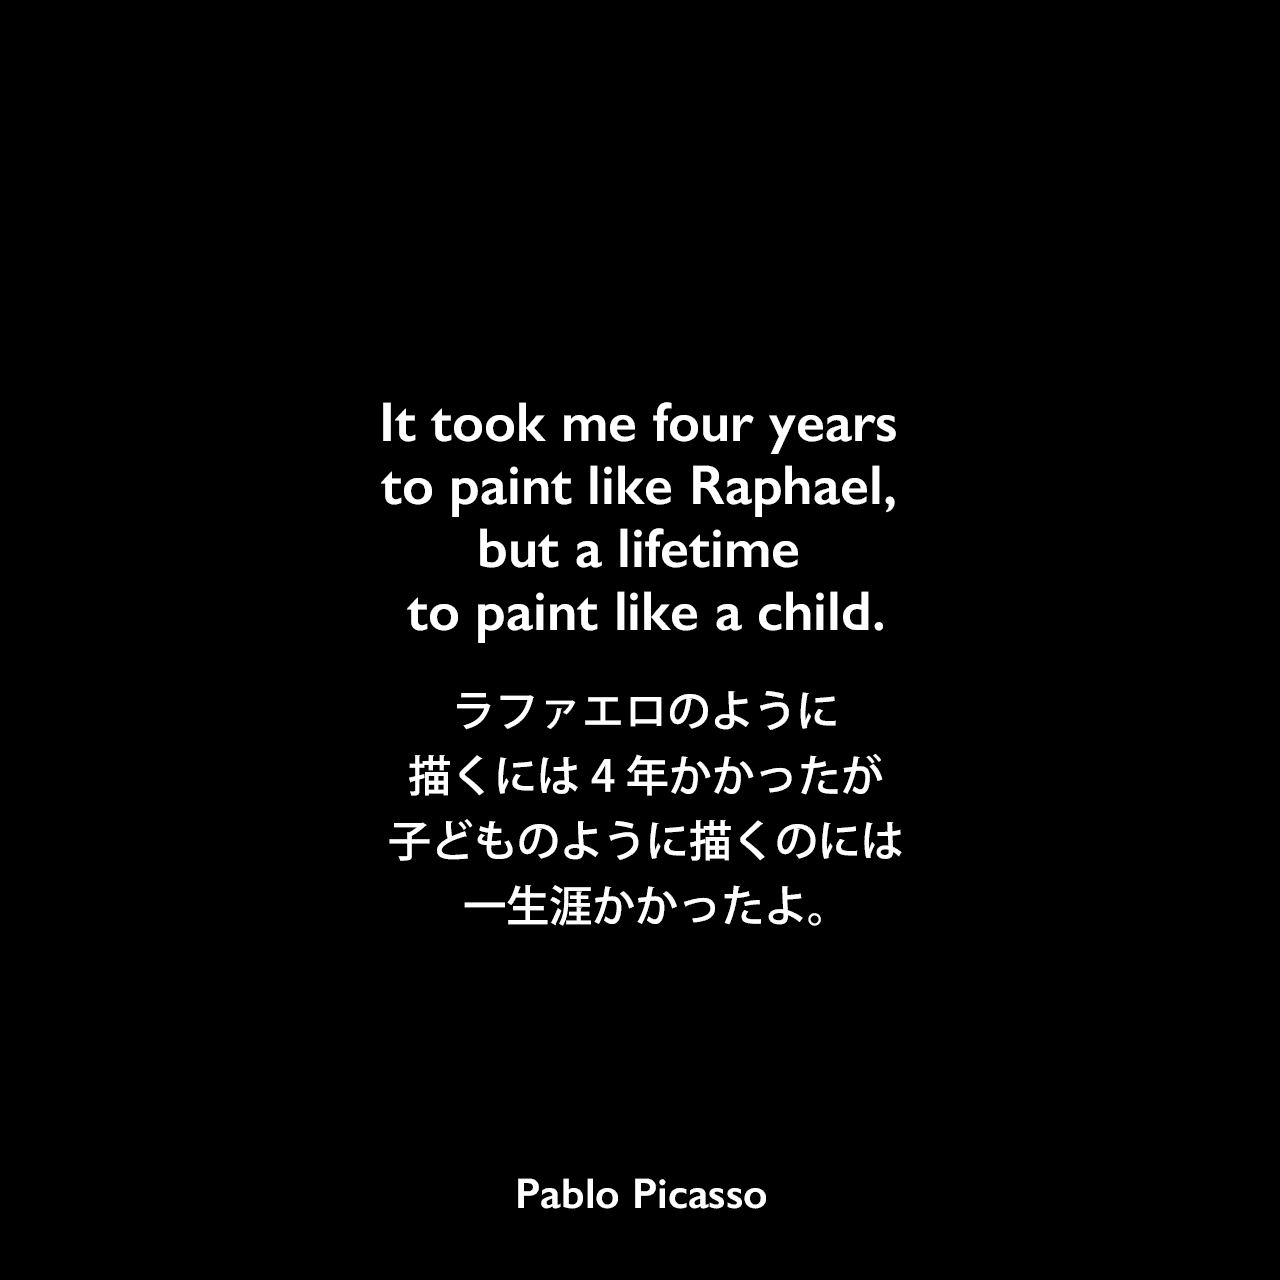 It took me four years to paint like Raphael, but a lifetime to paint like a child.ラファエロのように描くには4年かかったが、子どものように描くのには一生涯かかったよ。- Peter Erskineの本「The Drum Perspective」よりPablo Picasso